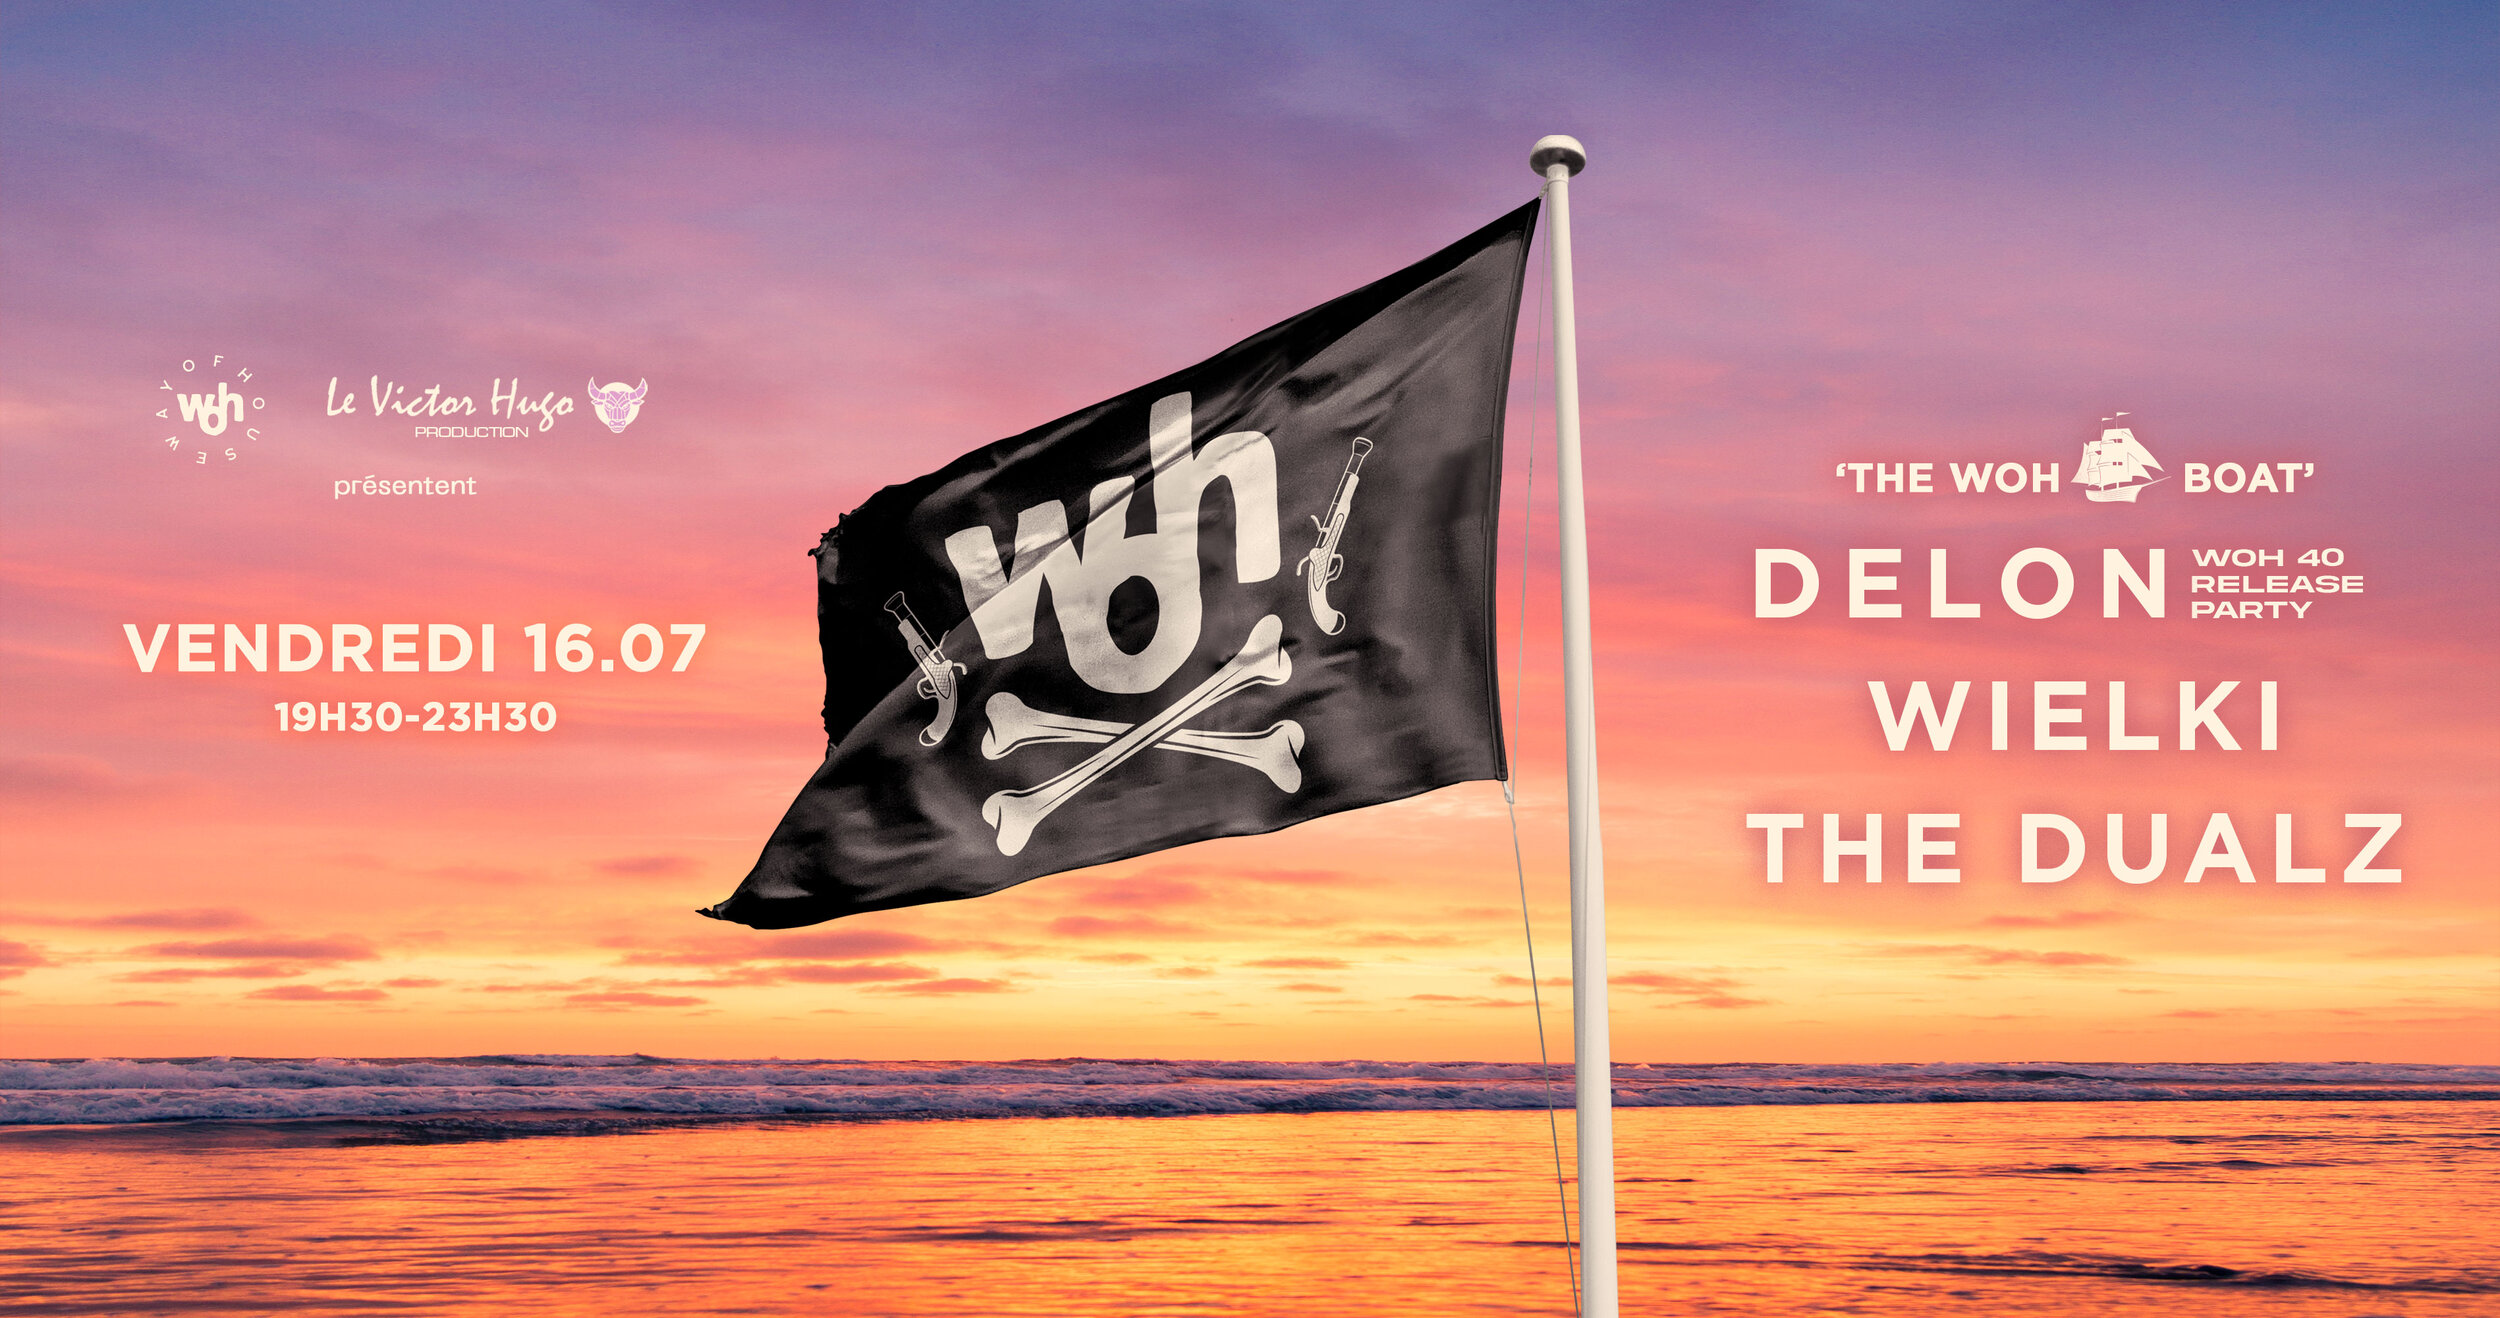 THE WOH BOAT PARTY